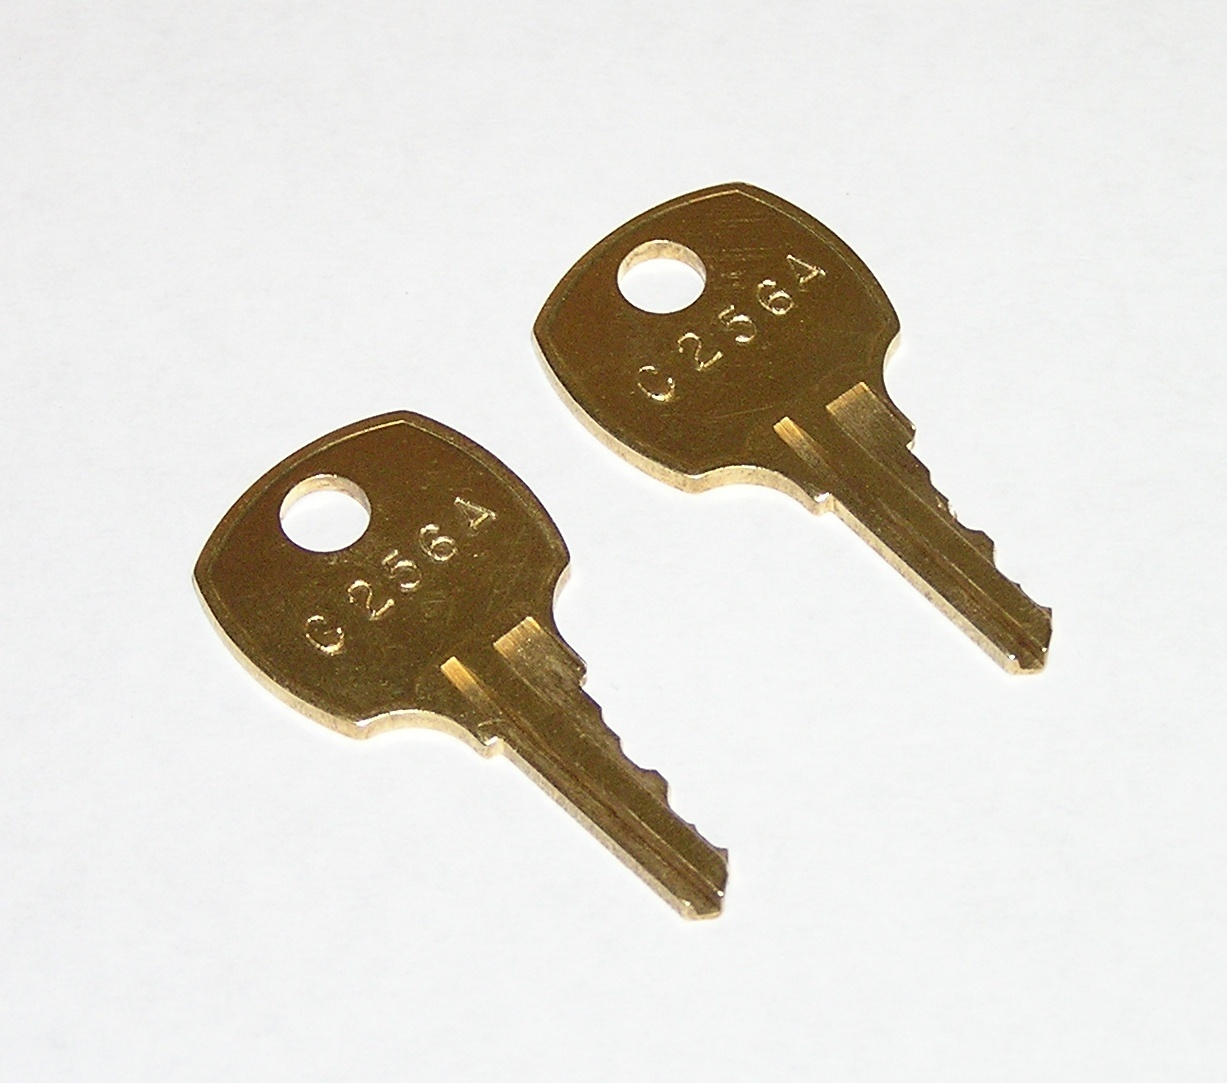 Primary image for 2 - C256A AMI Rowe Jukebox Brass Replacement Cabinet Keys fit CompX National